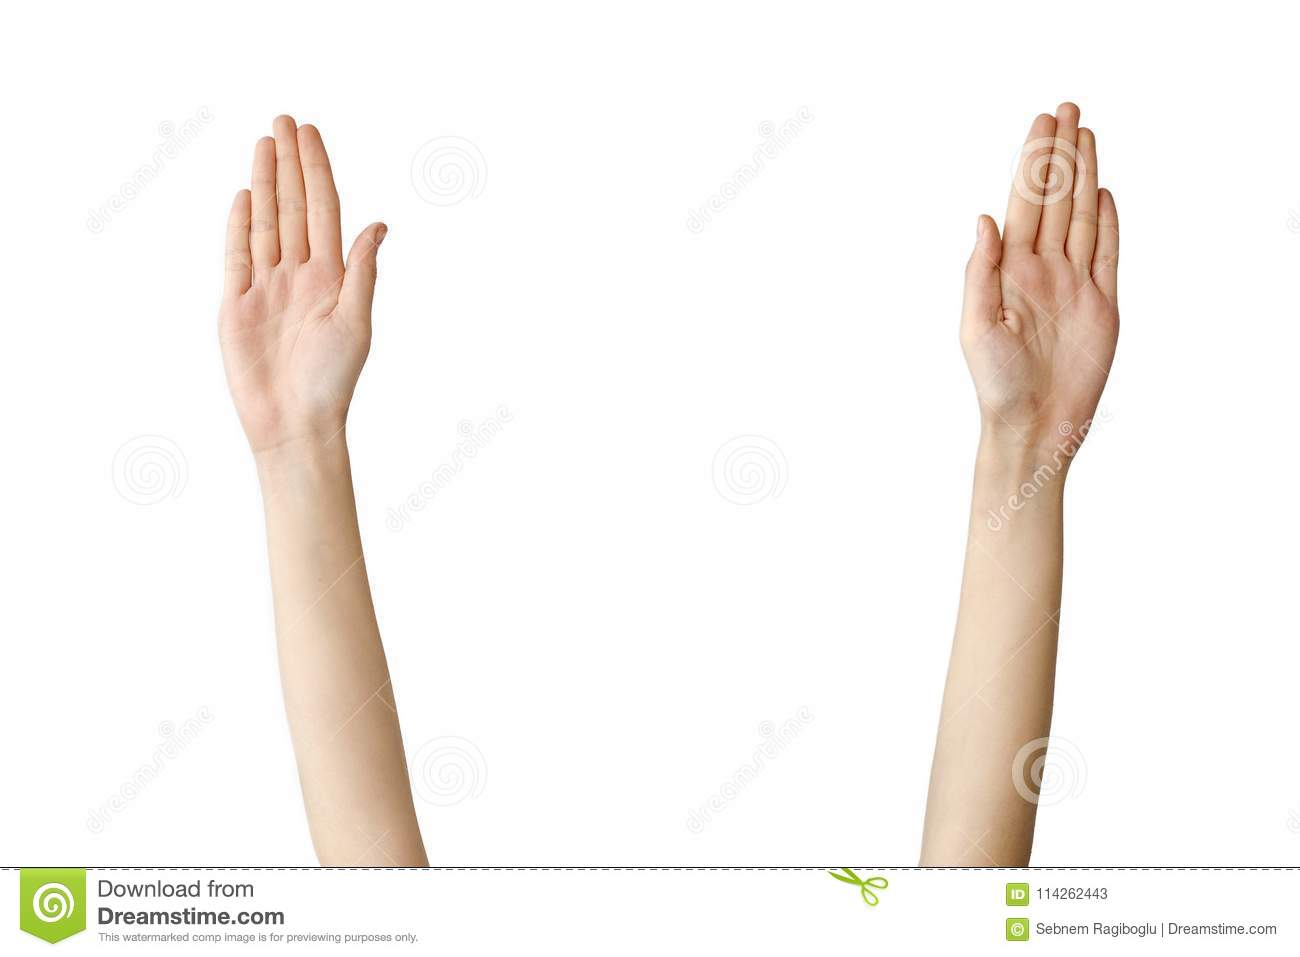 Female hand reaching out on isolated background